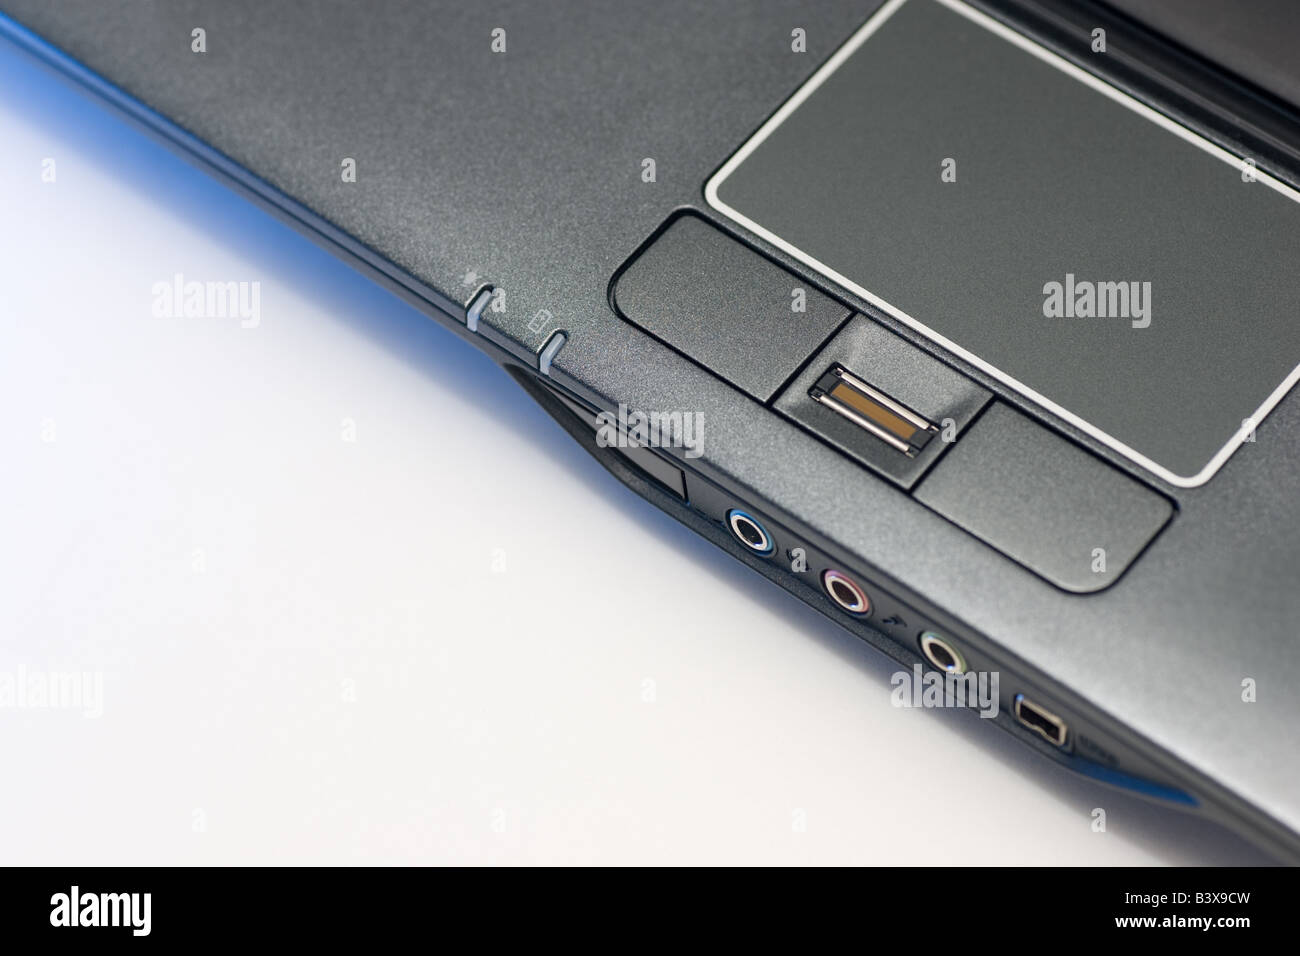 Notebook touchpad with Fingerprint reader. - Stock Image